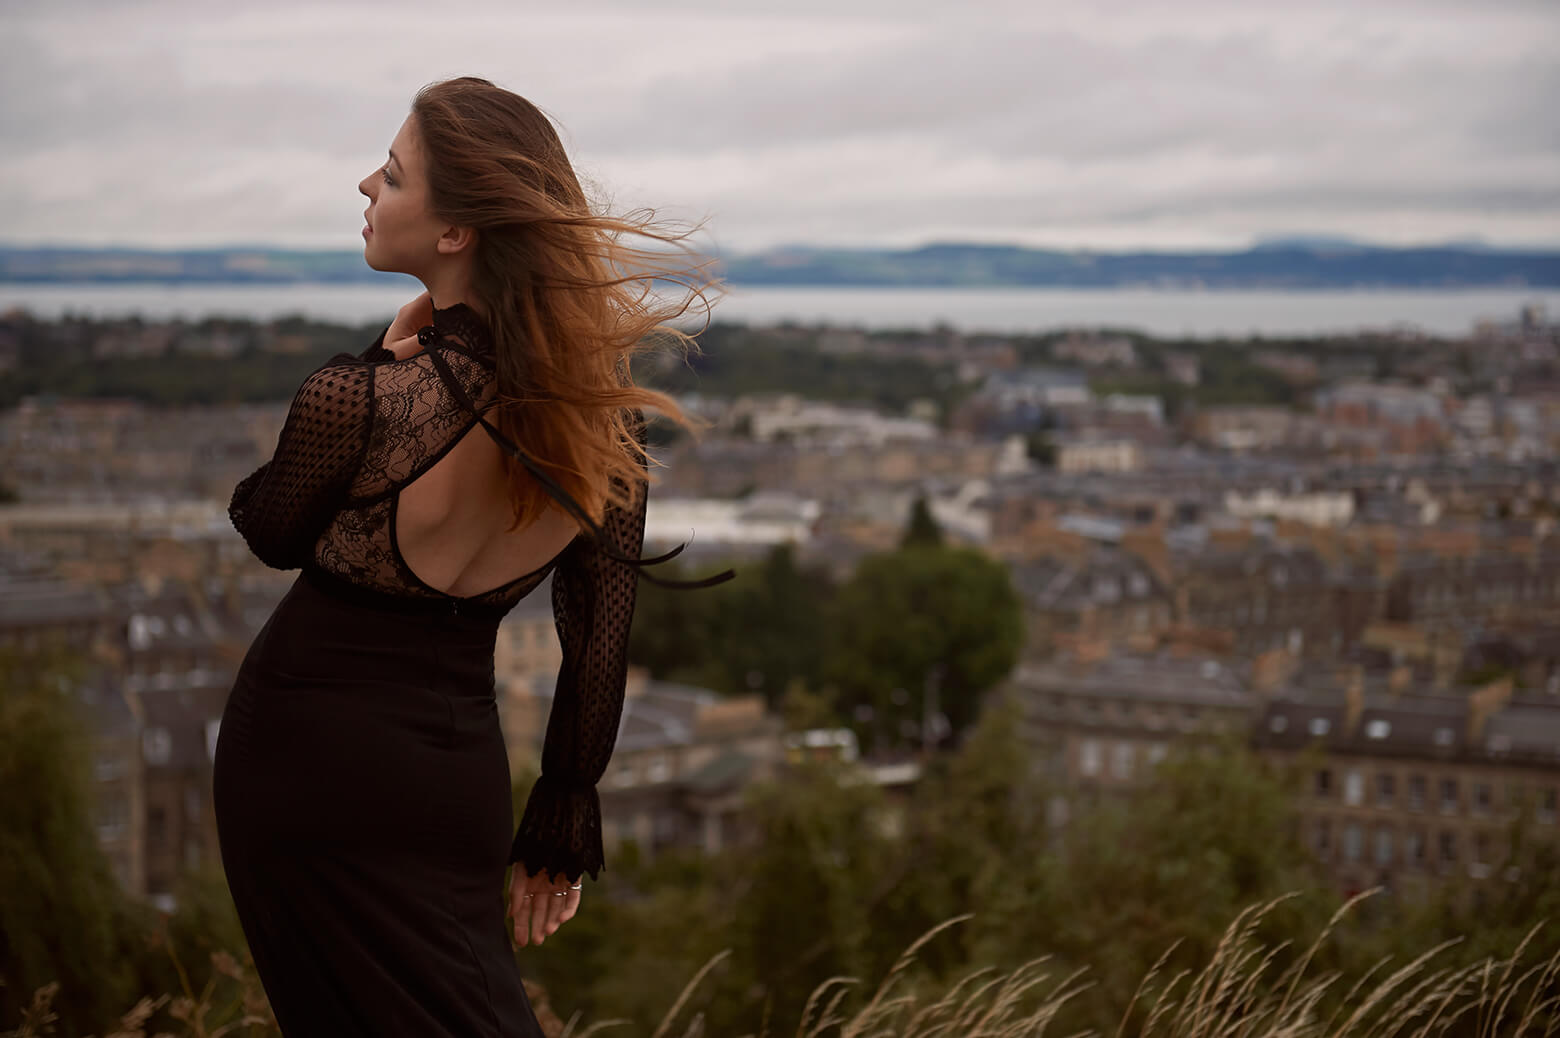 edinburgh, photo shoot, foto session, fotografin, scotland, destination, dream photo shoot, dancer, tänzerin, ursula schmitz, beauty, schottland, uk